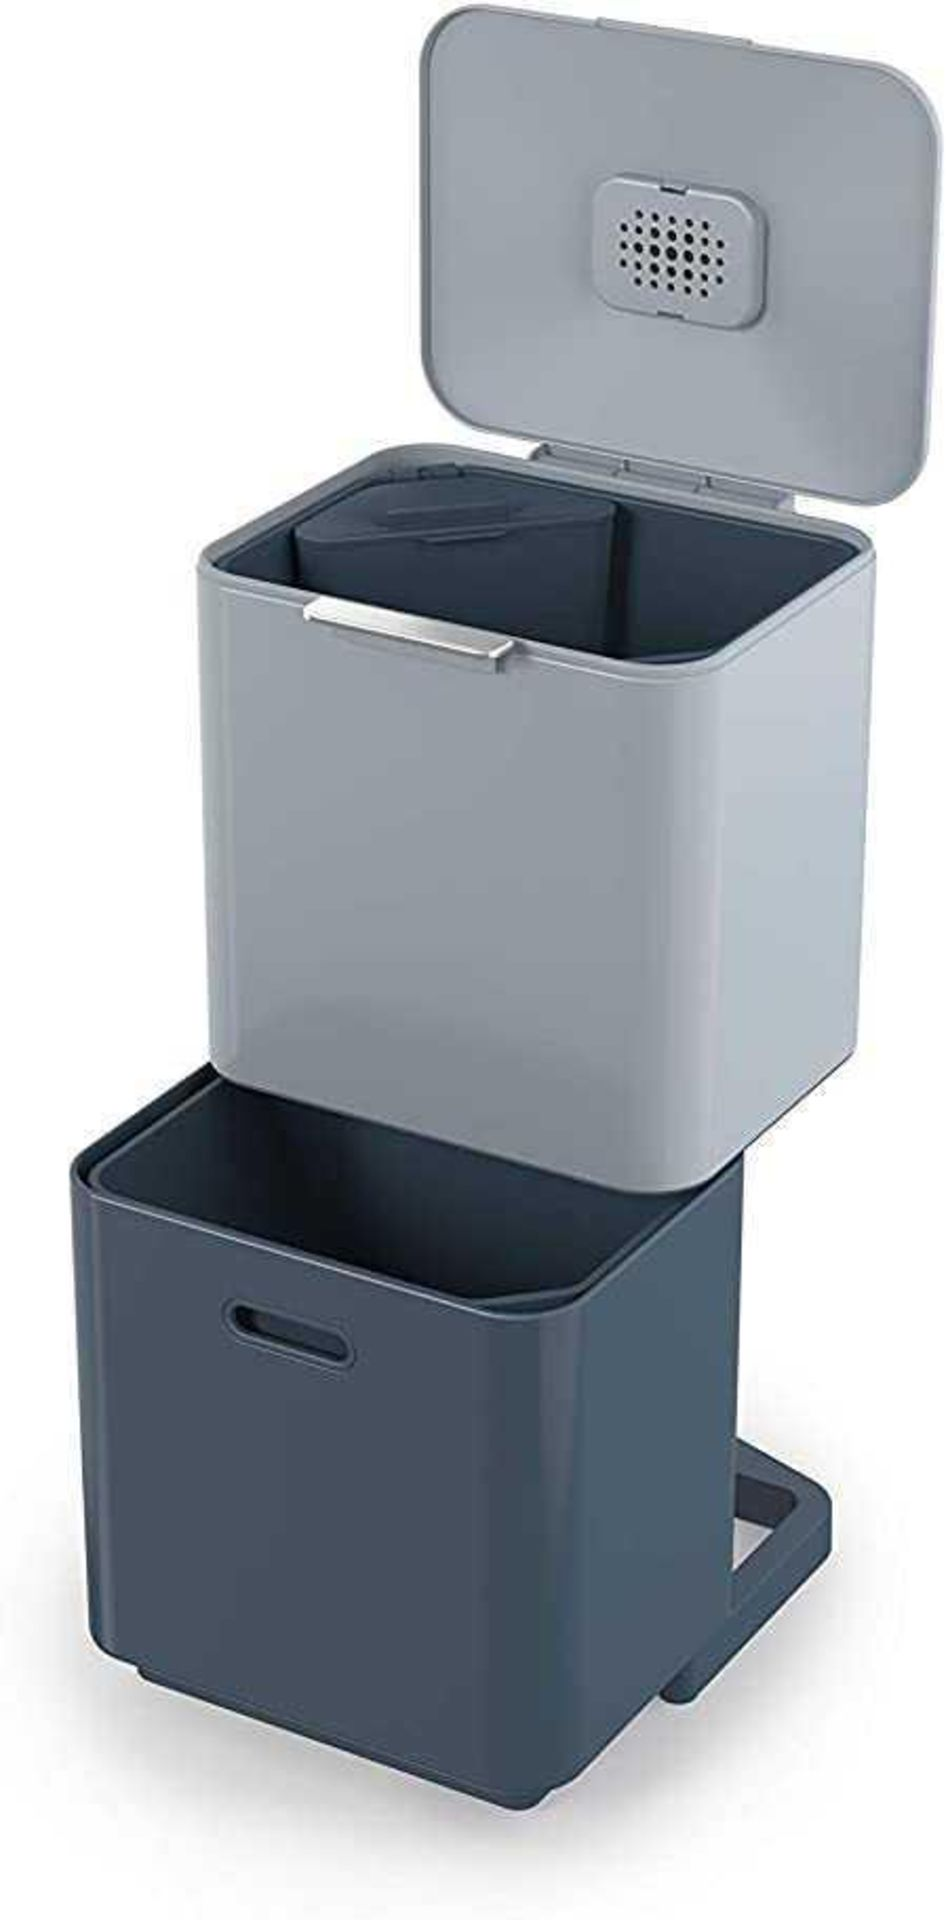 RRP £100 Unboxed Joseph Joseph Dual Compartment Waste System